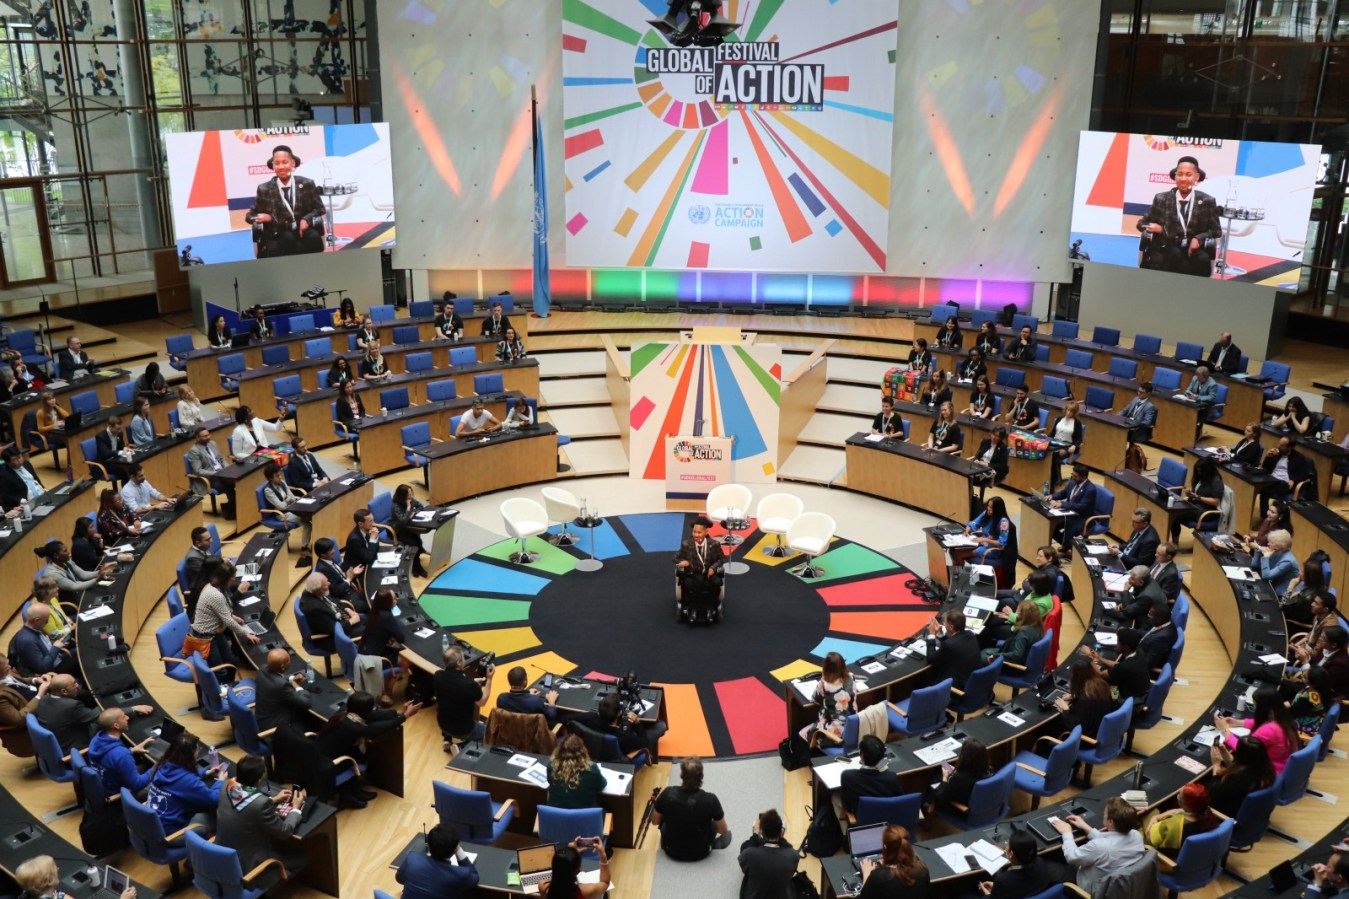 Sustainable Development Goals engagement reaches new heights at largest ever SDG Global Festival ofAction